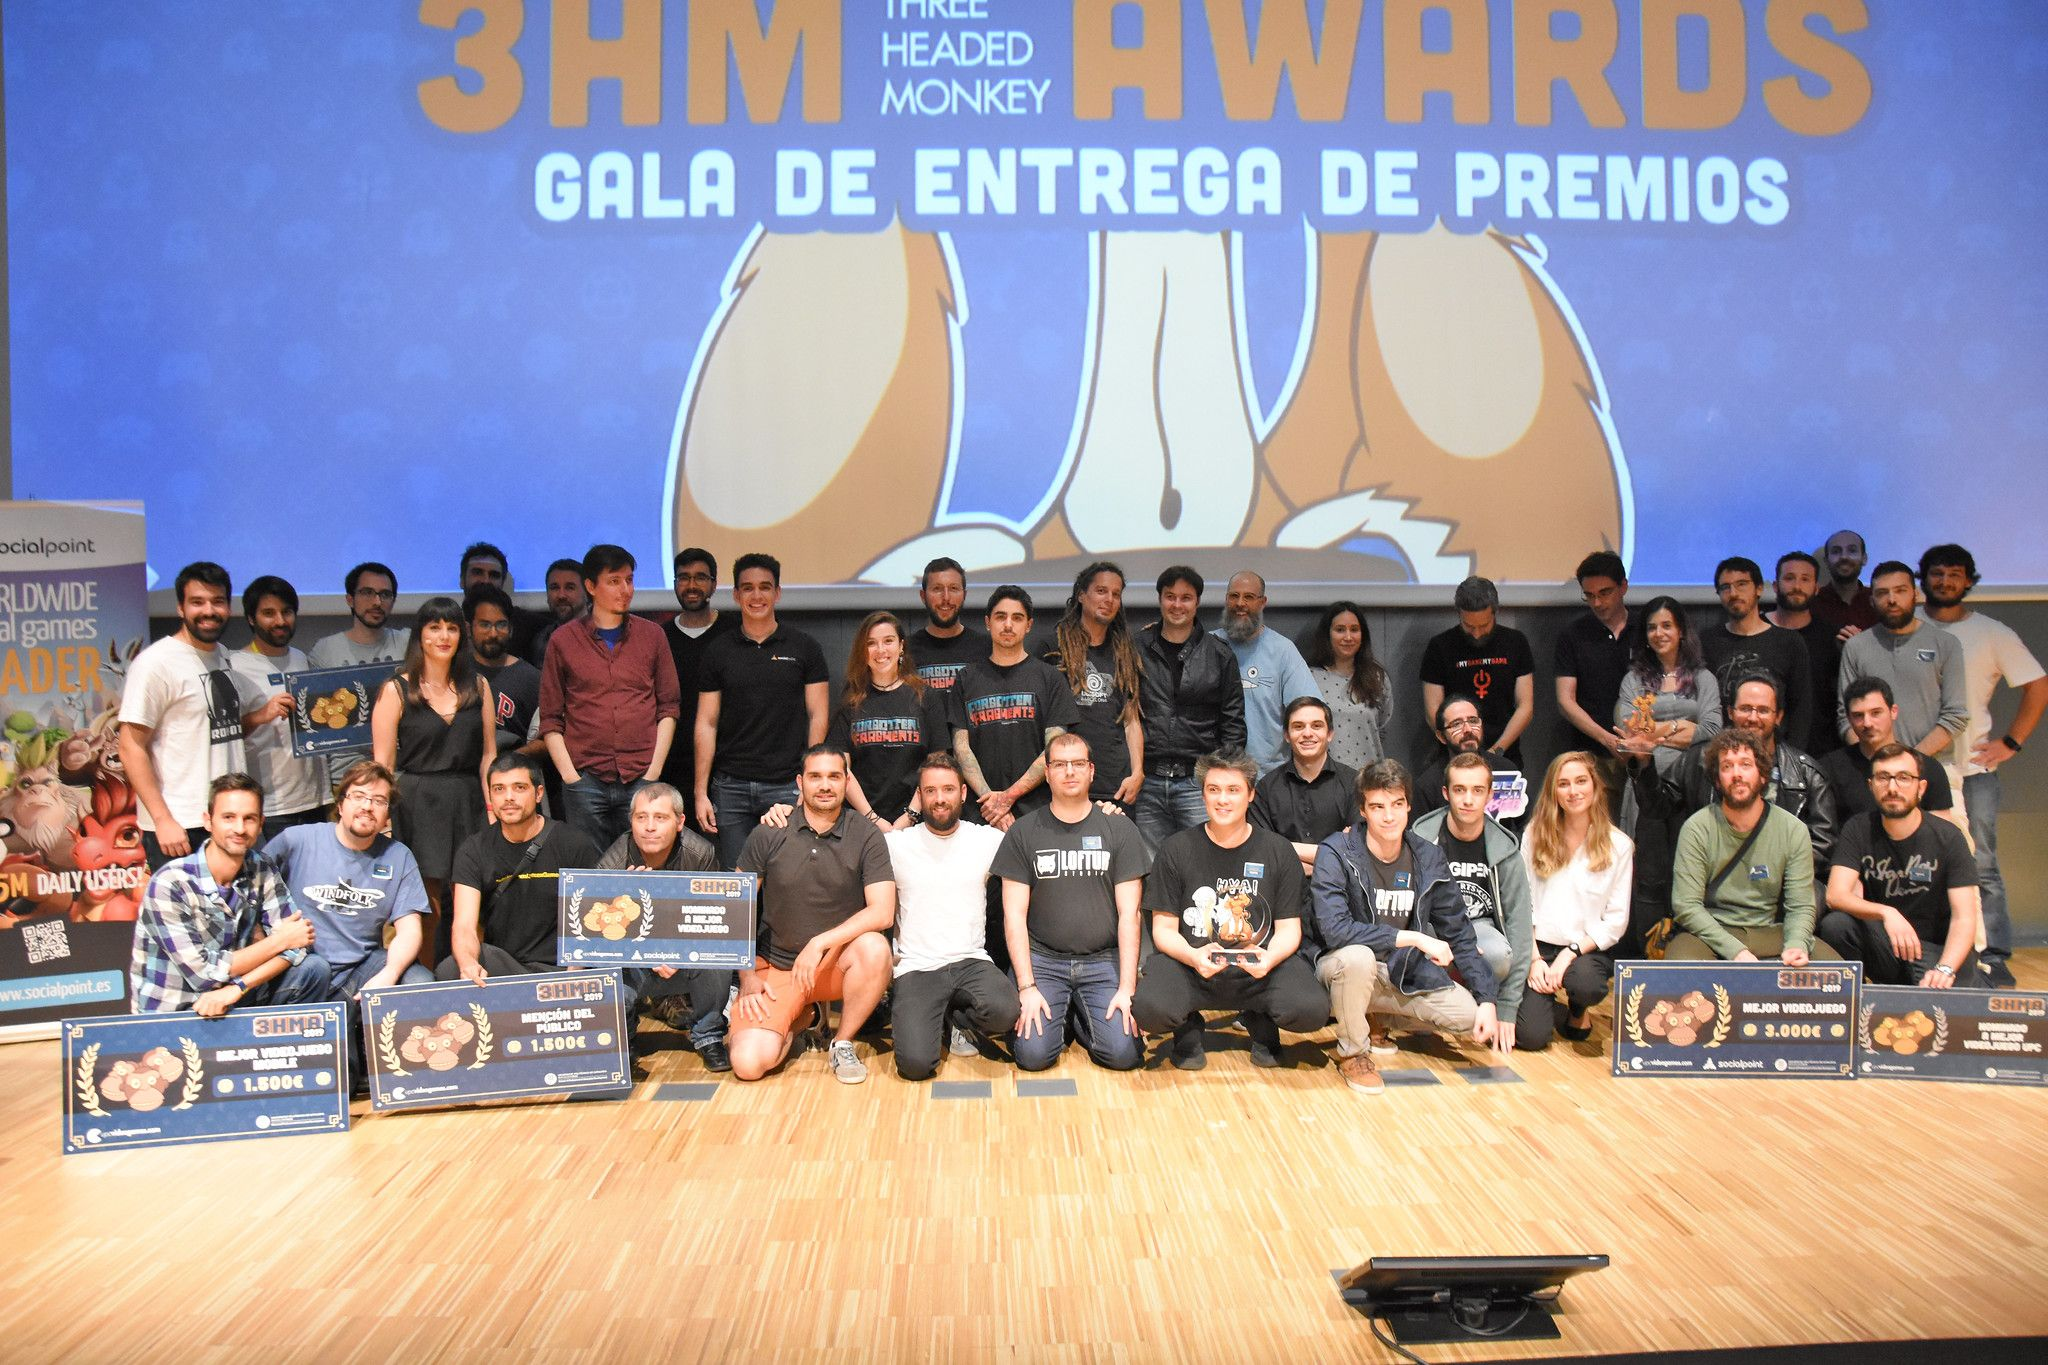 Fotografia Concurso de videojuegos Three Headed Monkey Awards